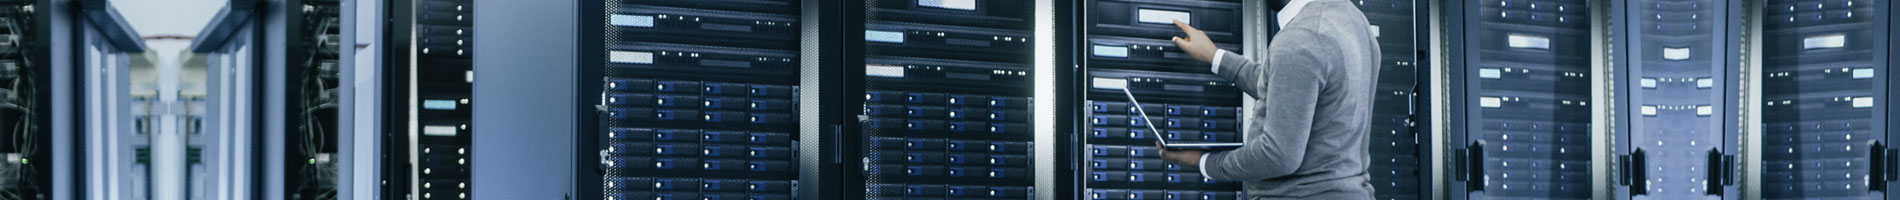 Managed Services banner image